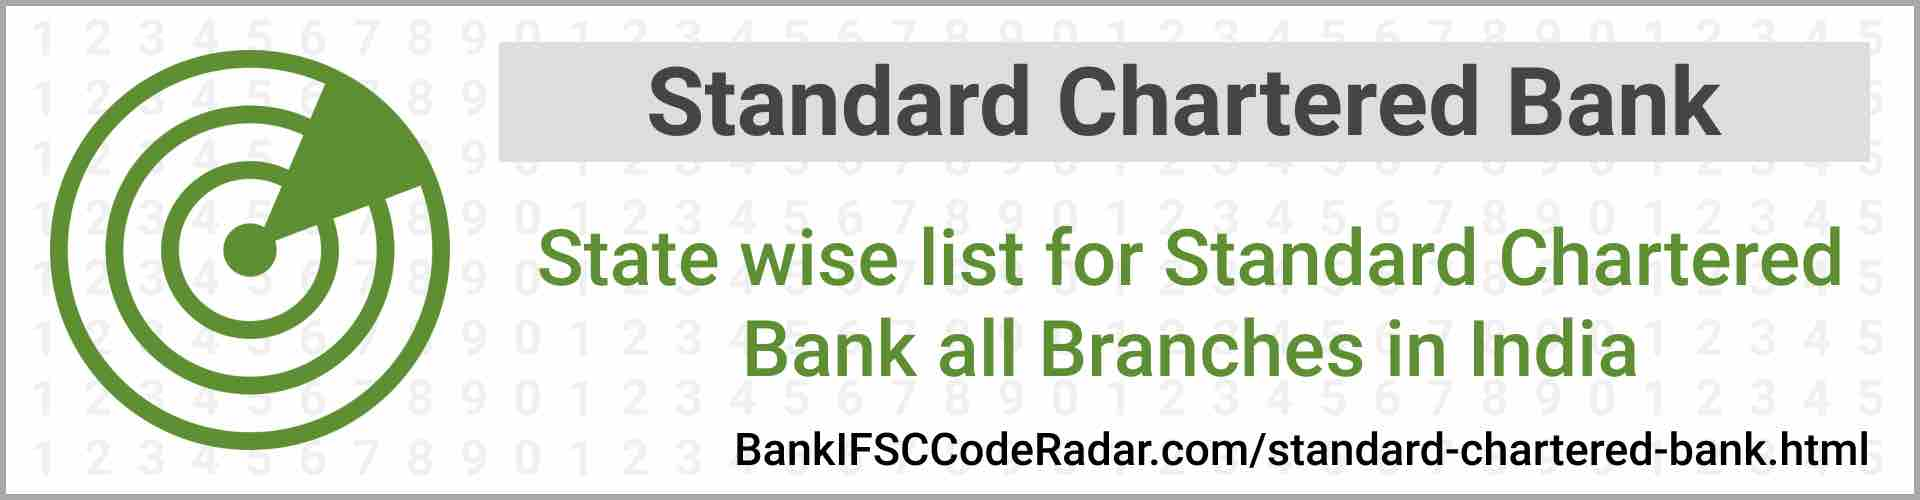 Standard Chartered Bank All Branches India